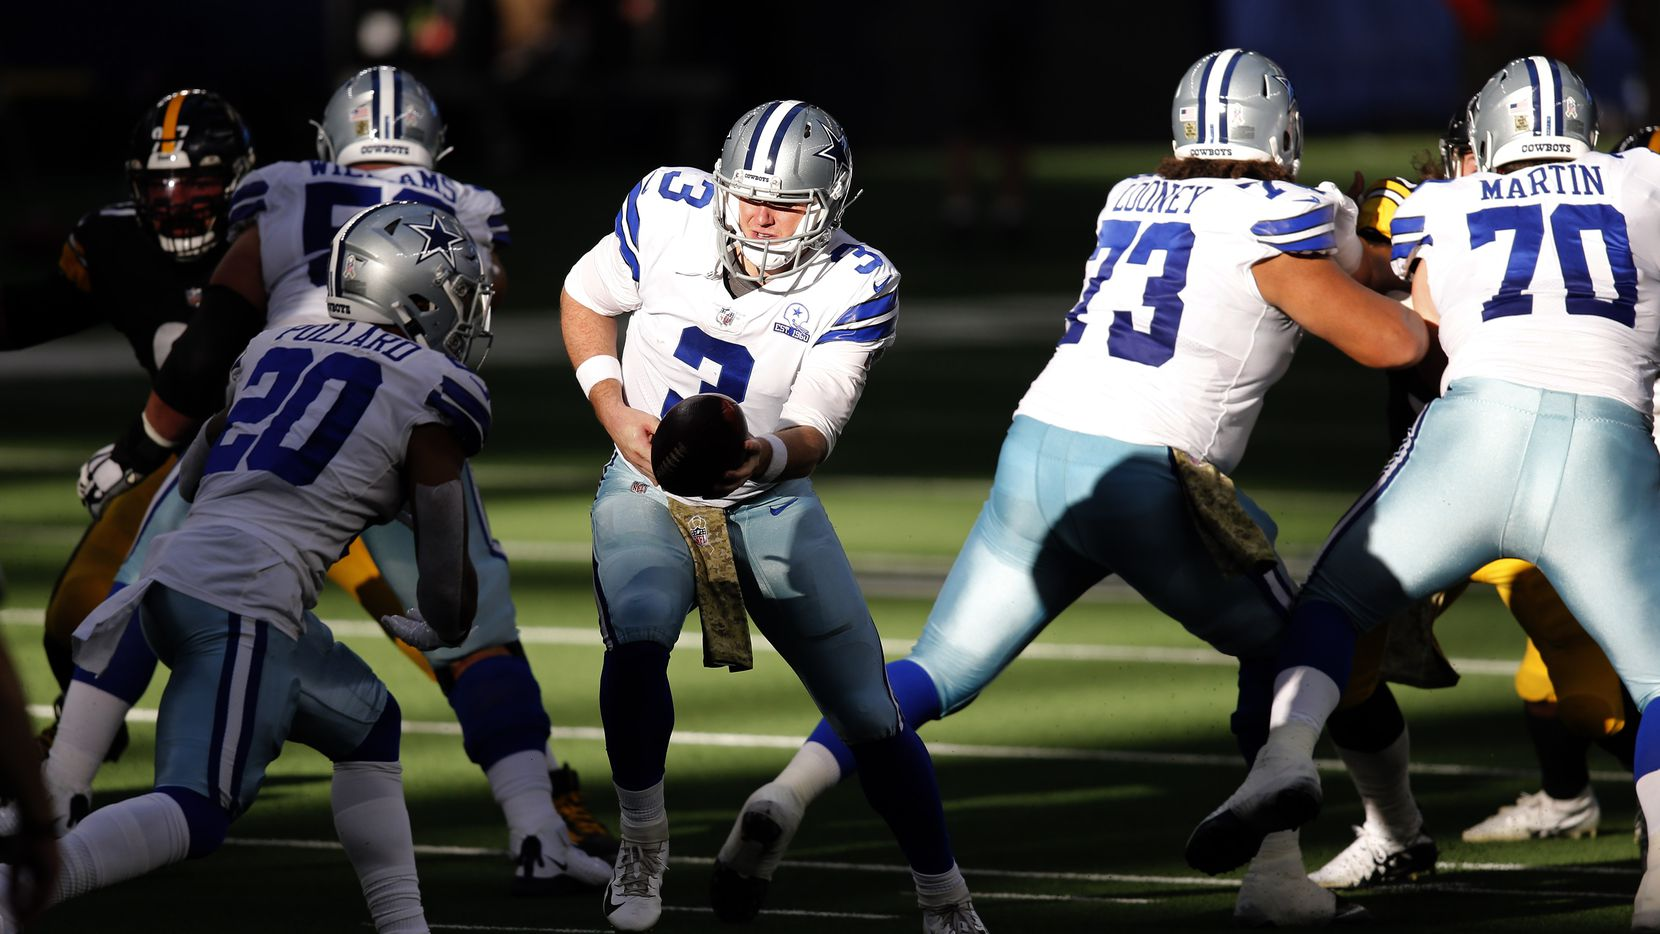 Dallas Cowboys quarterback Garrett Gilbert (3) hands the ball off to running back Tony Pollard (20) during the second quarter against the Pittsburgh Steelers at AT&T Stadium in Arlington, Texas Sunday, November 8, 2020.